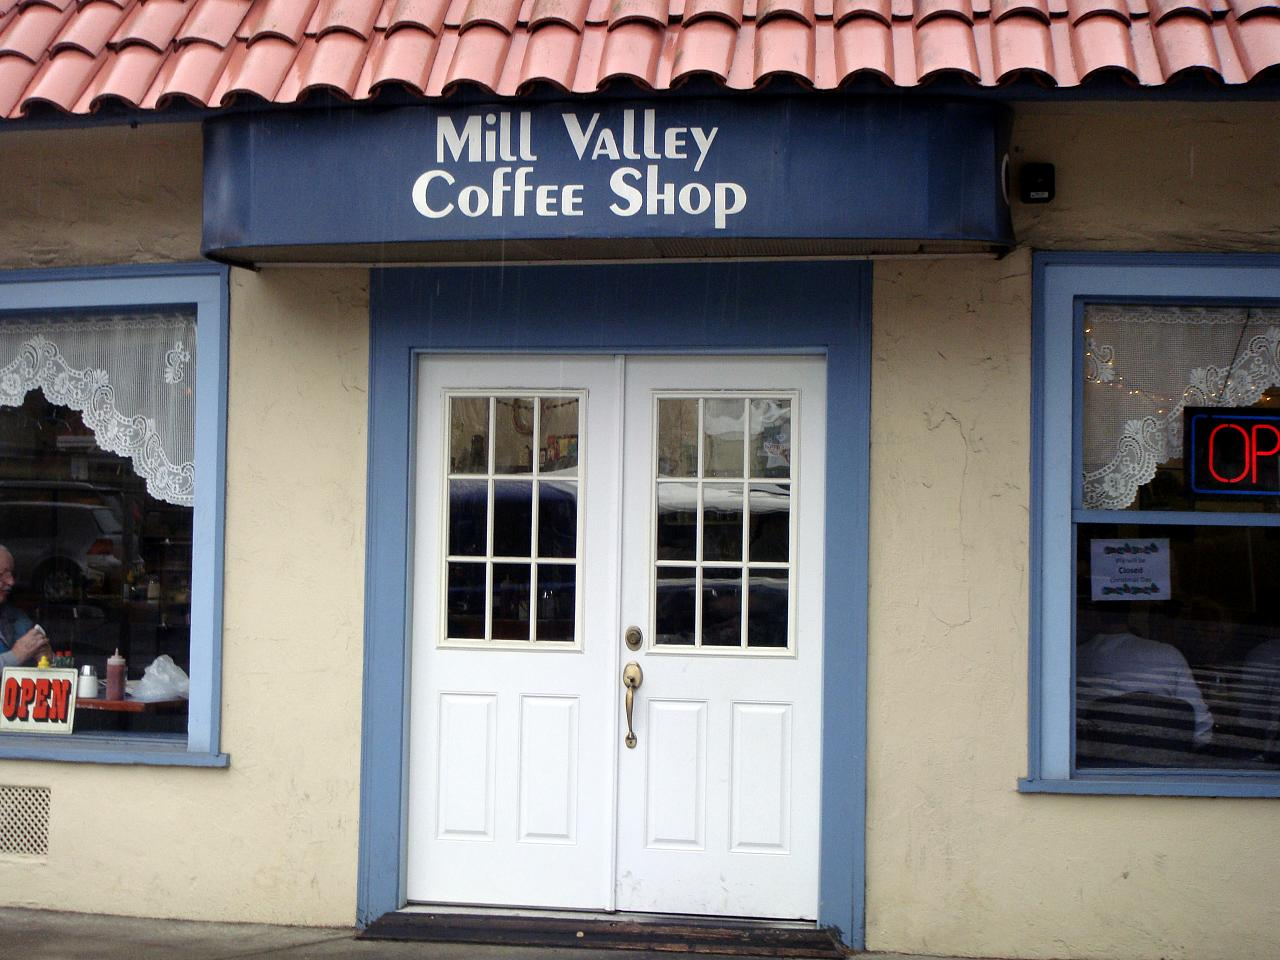 Mill Valley Coffee Shop